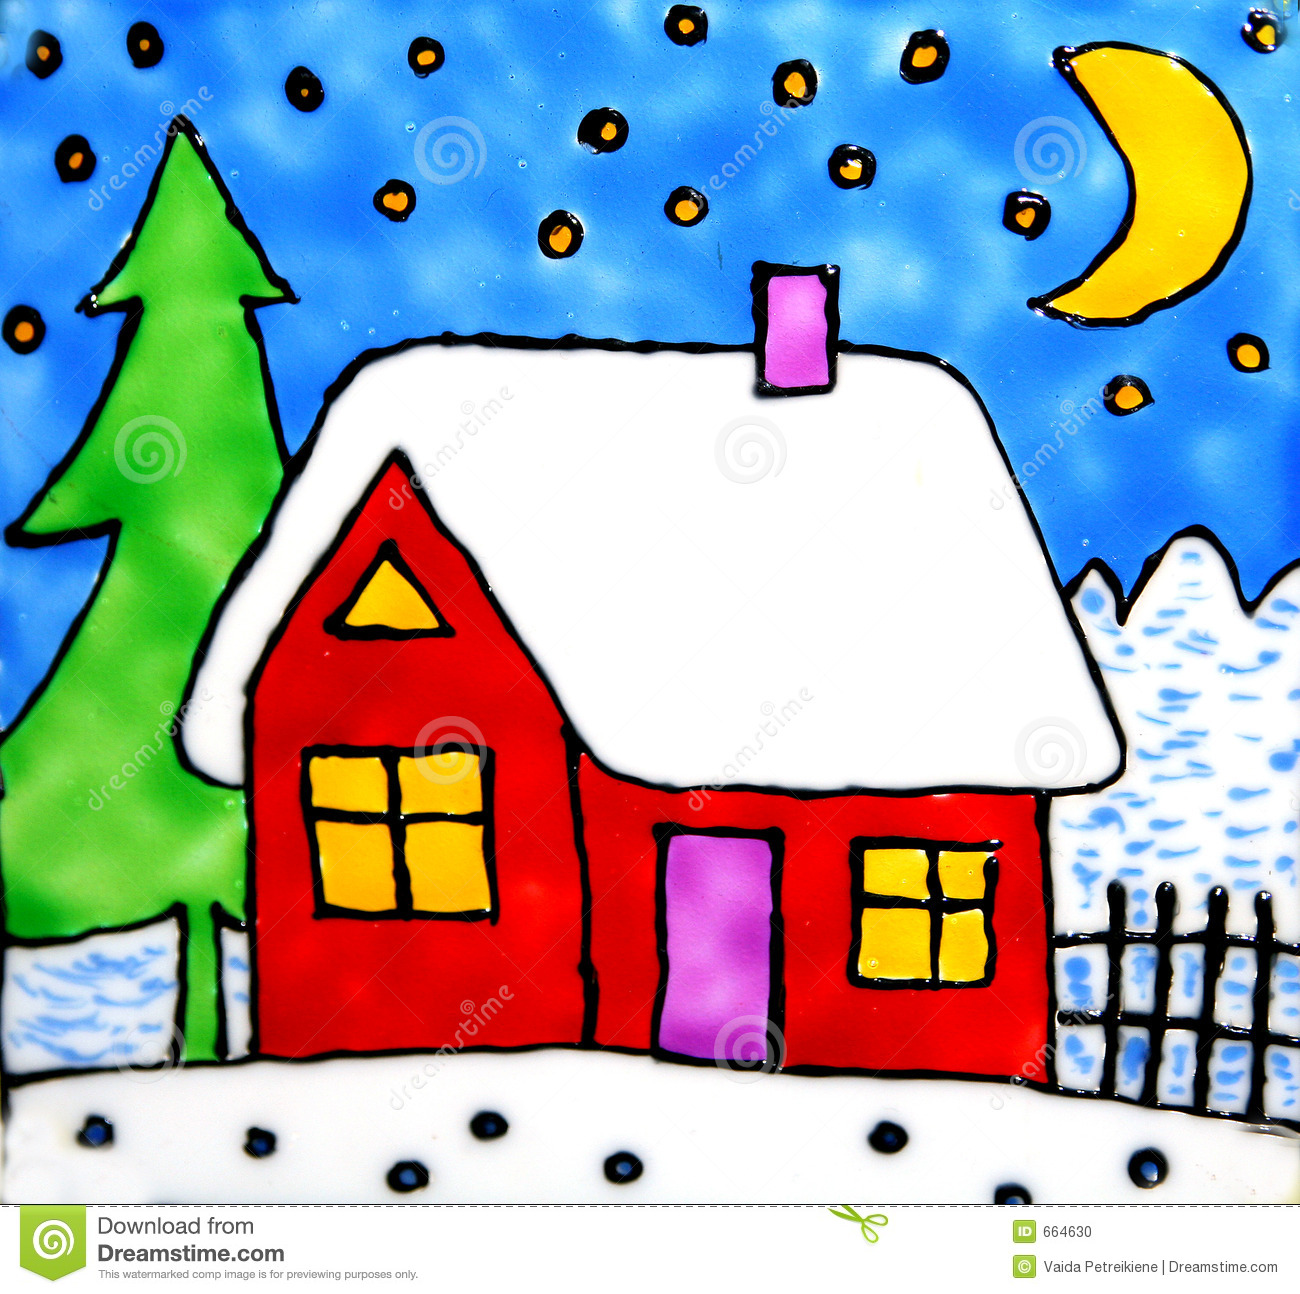 Artistic house clipart vector library library Artistic House In Winter Stock Photo - Image: 664630 vector library library